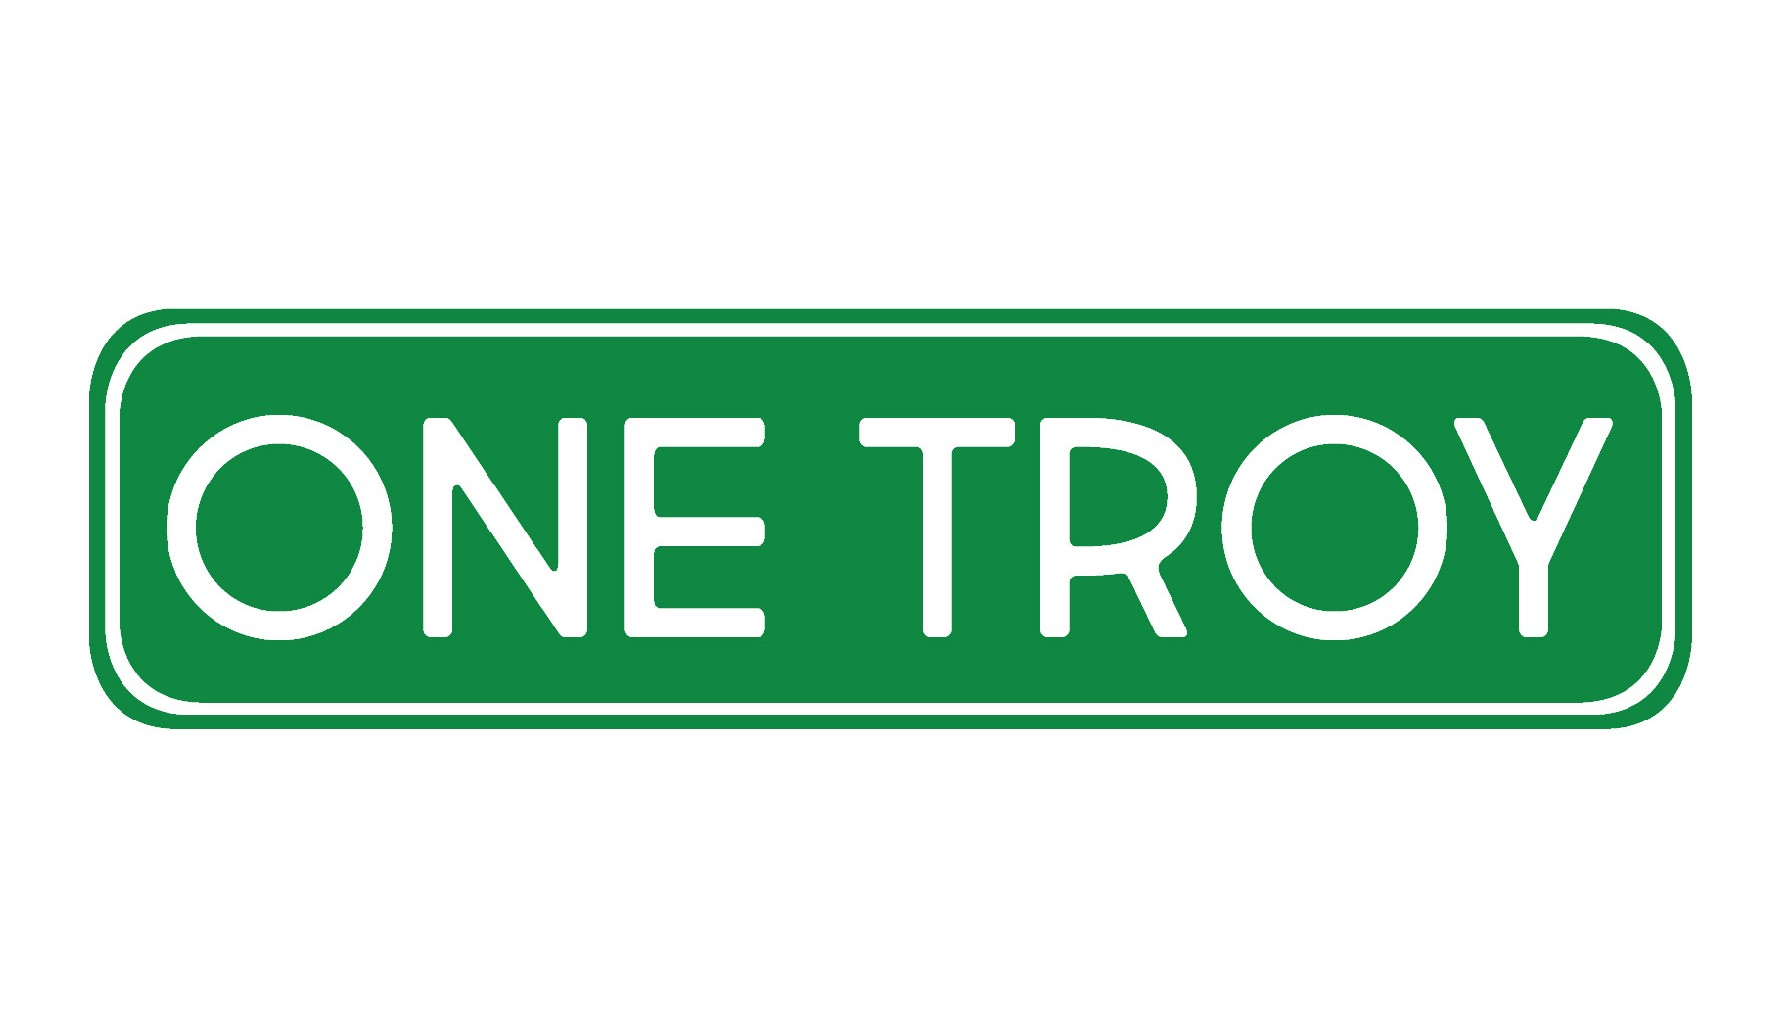 Learn more! - One neighborhood. One community. One Troy.